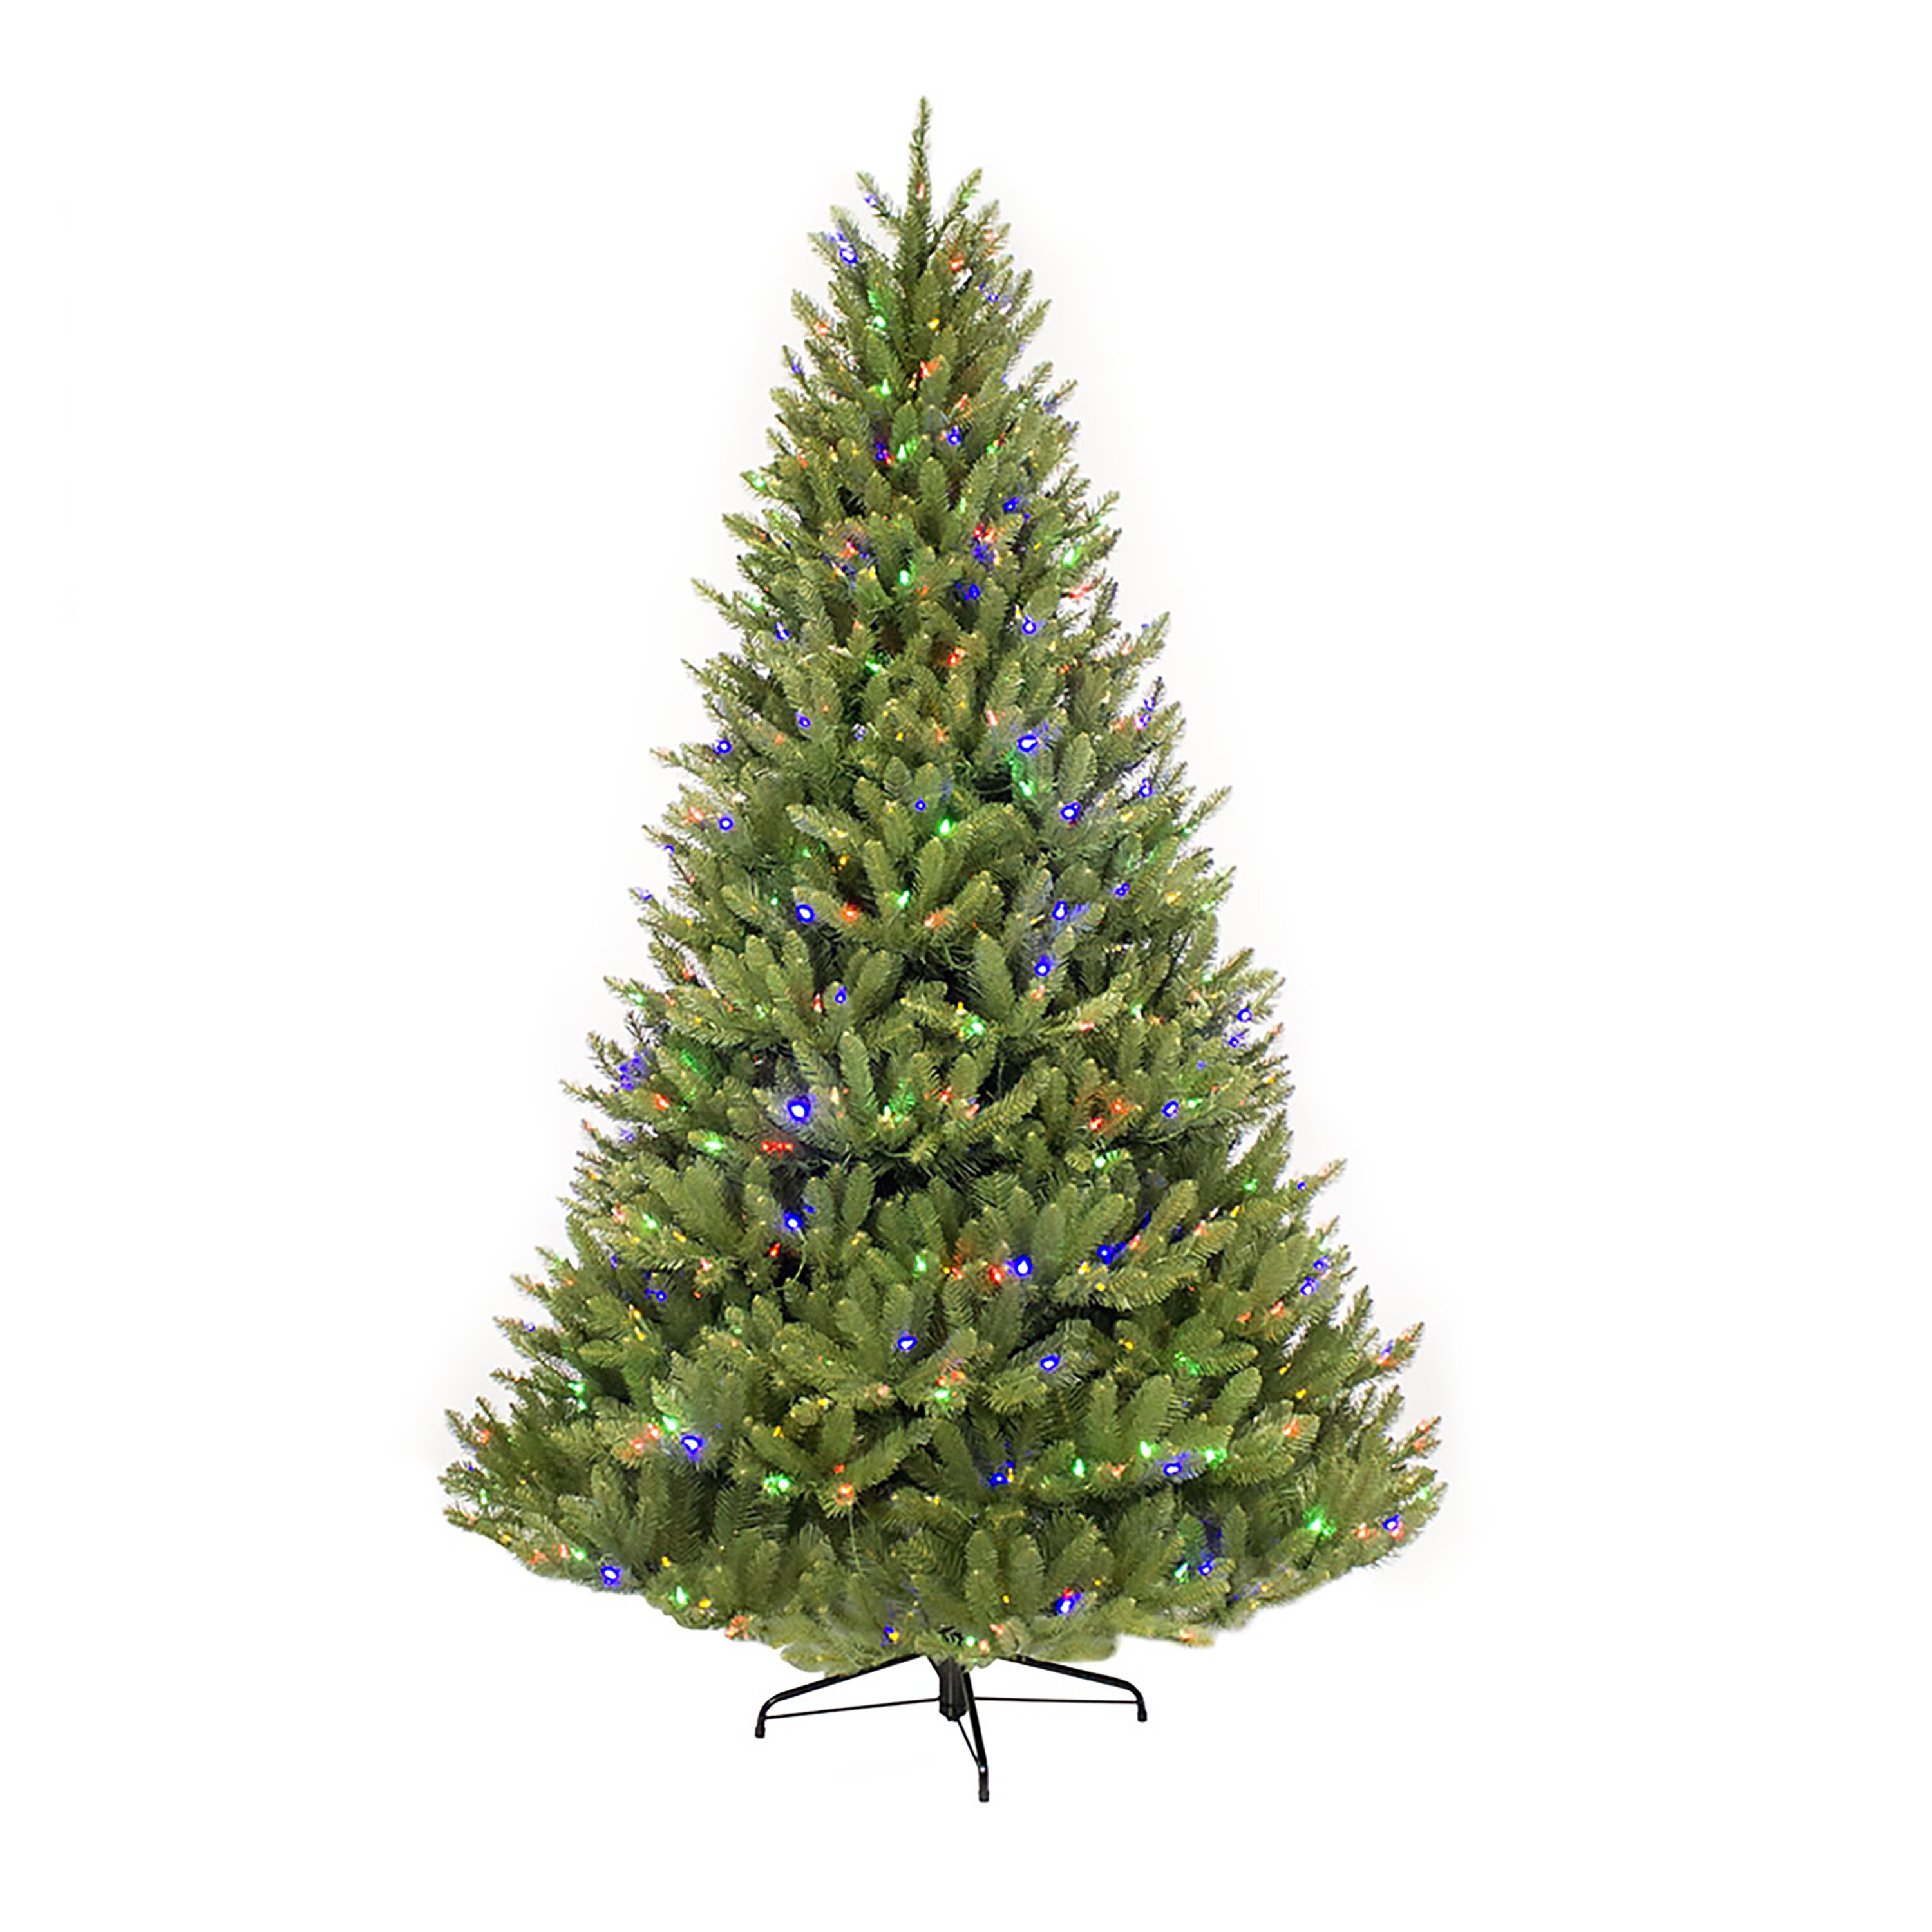 Fraser Fir Christmas Trees.Pre Lit Fraser 90 Green Fir Tree Artificial Christmas Tree With 750 Multi Colored Lights With Stand